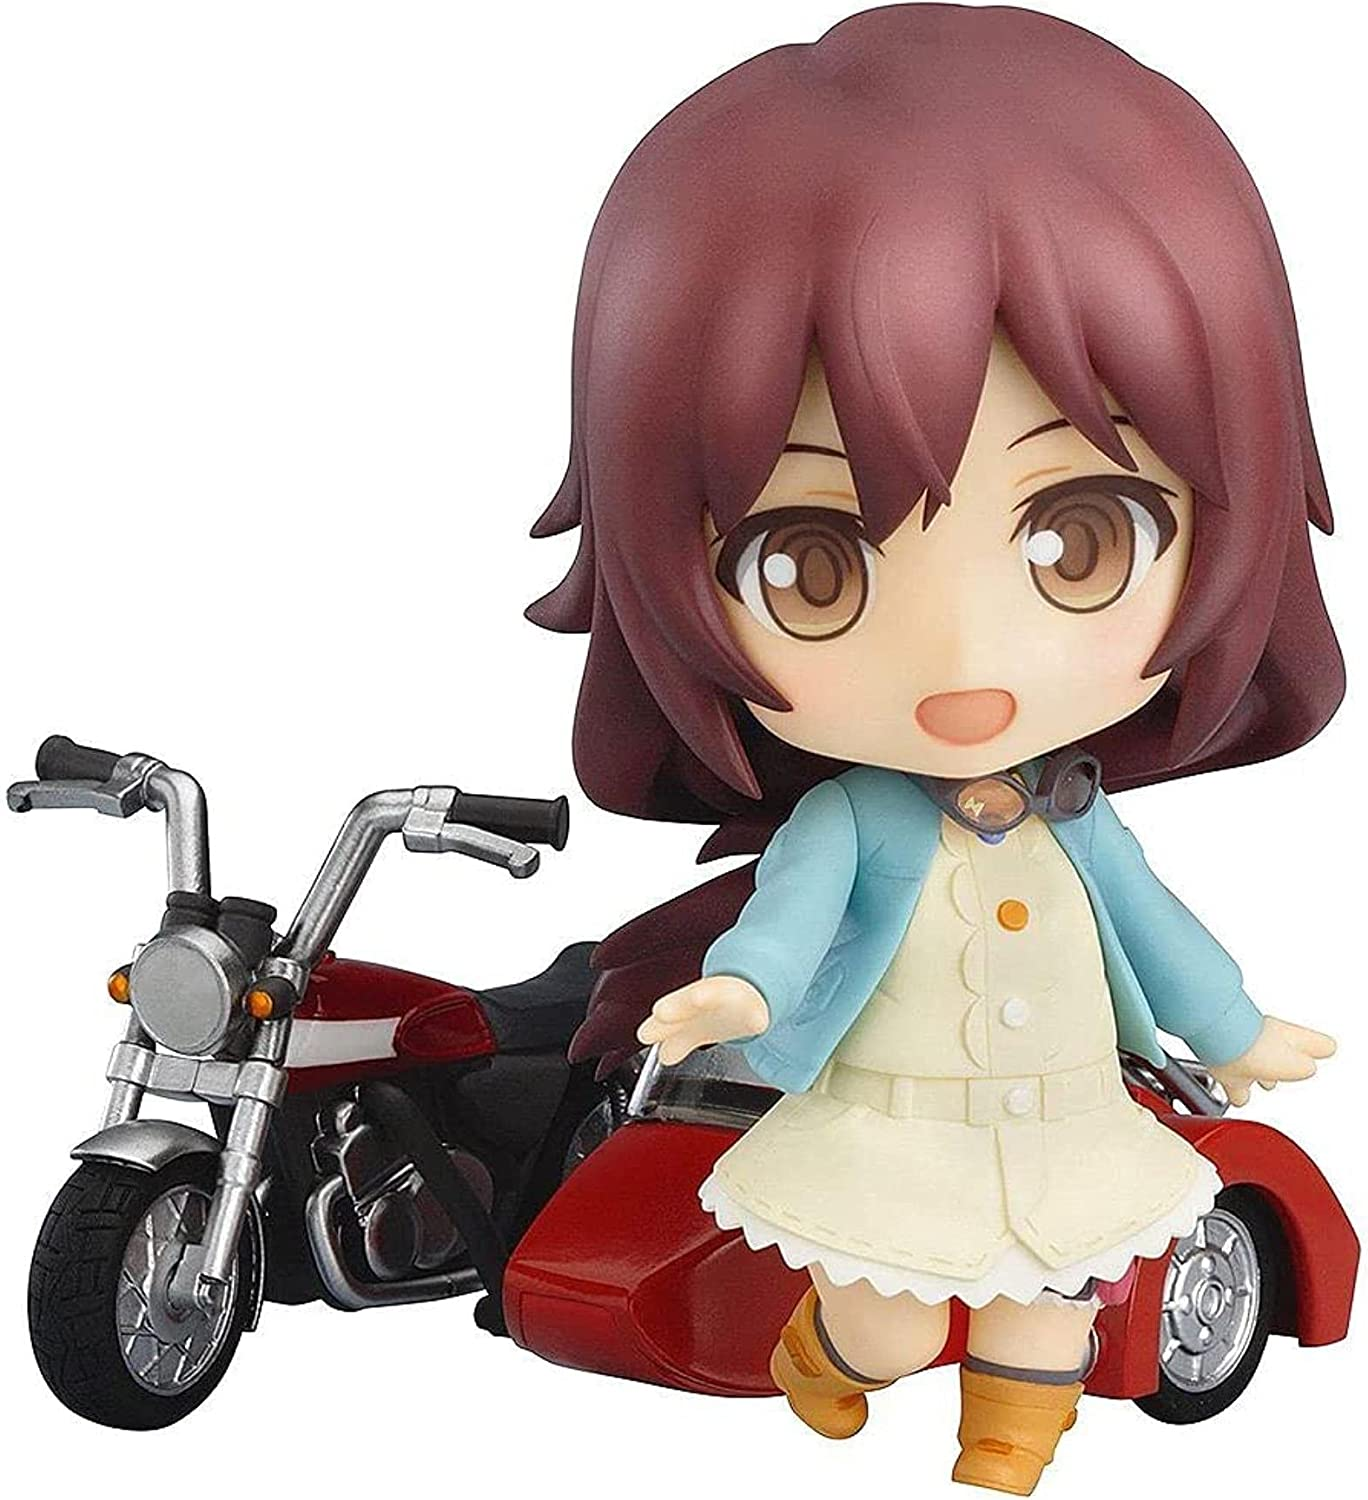 Limited Special Price Movable Manufacturer direct delivery Nendoroid Moritomo Nozomi from The Figure is